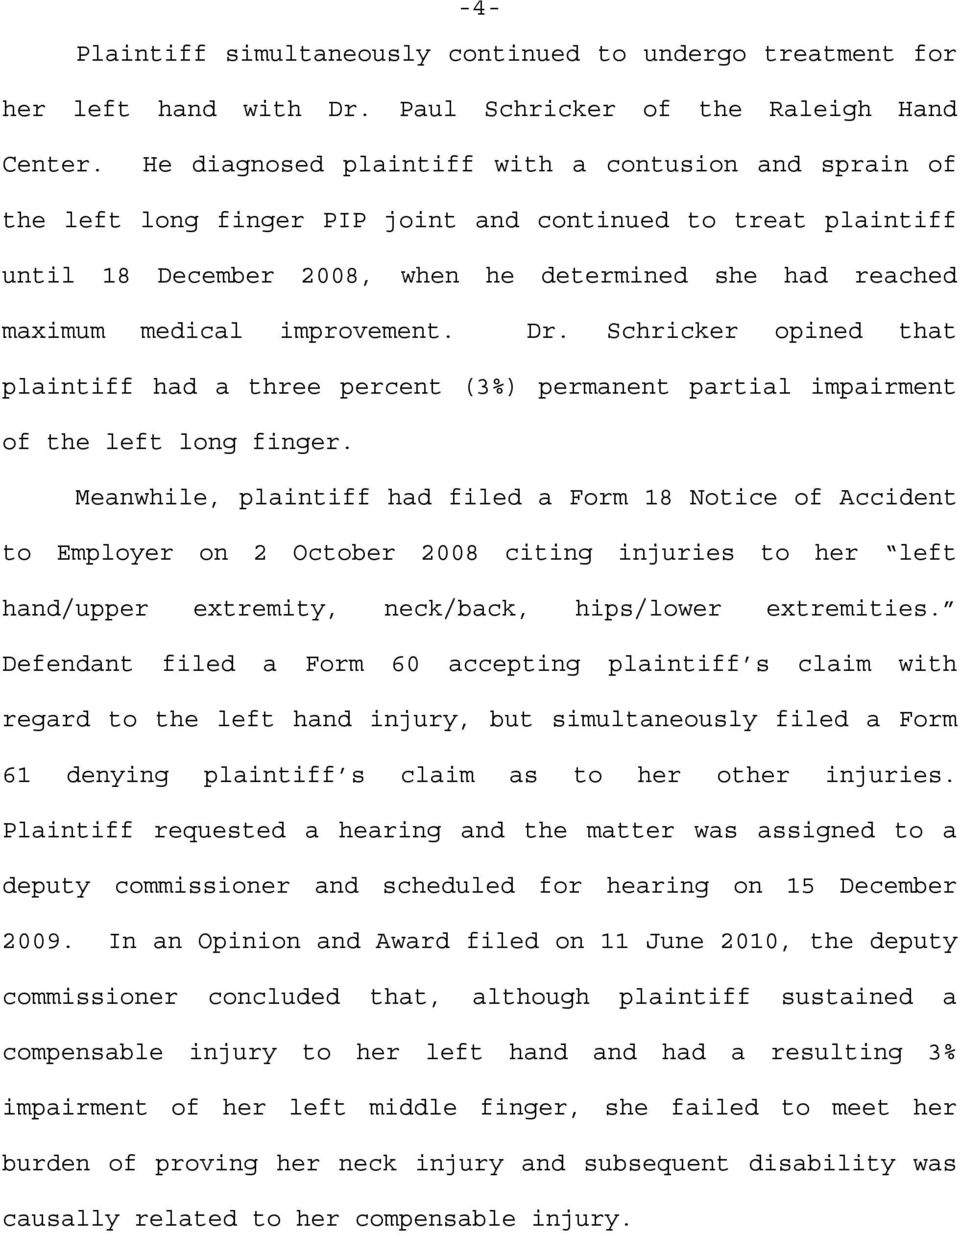 improvement. Dr. Schricker opined that plaintiff had a three percent (3%) permanent partial impairment of the left long finger.